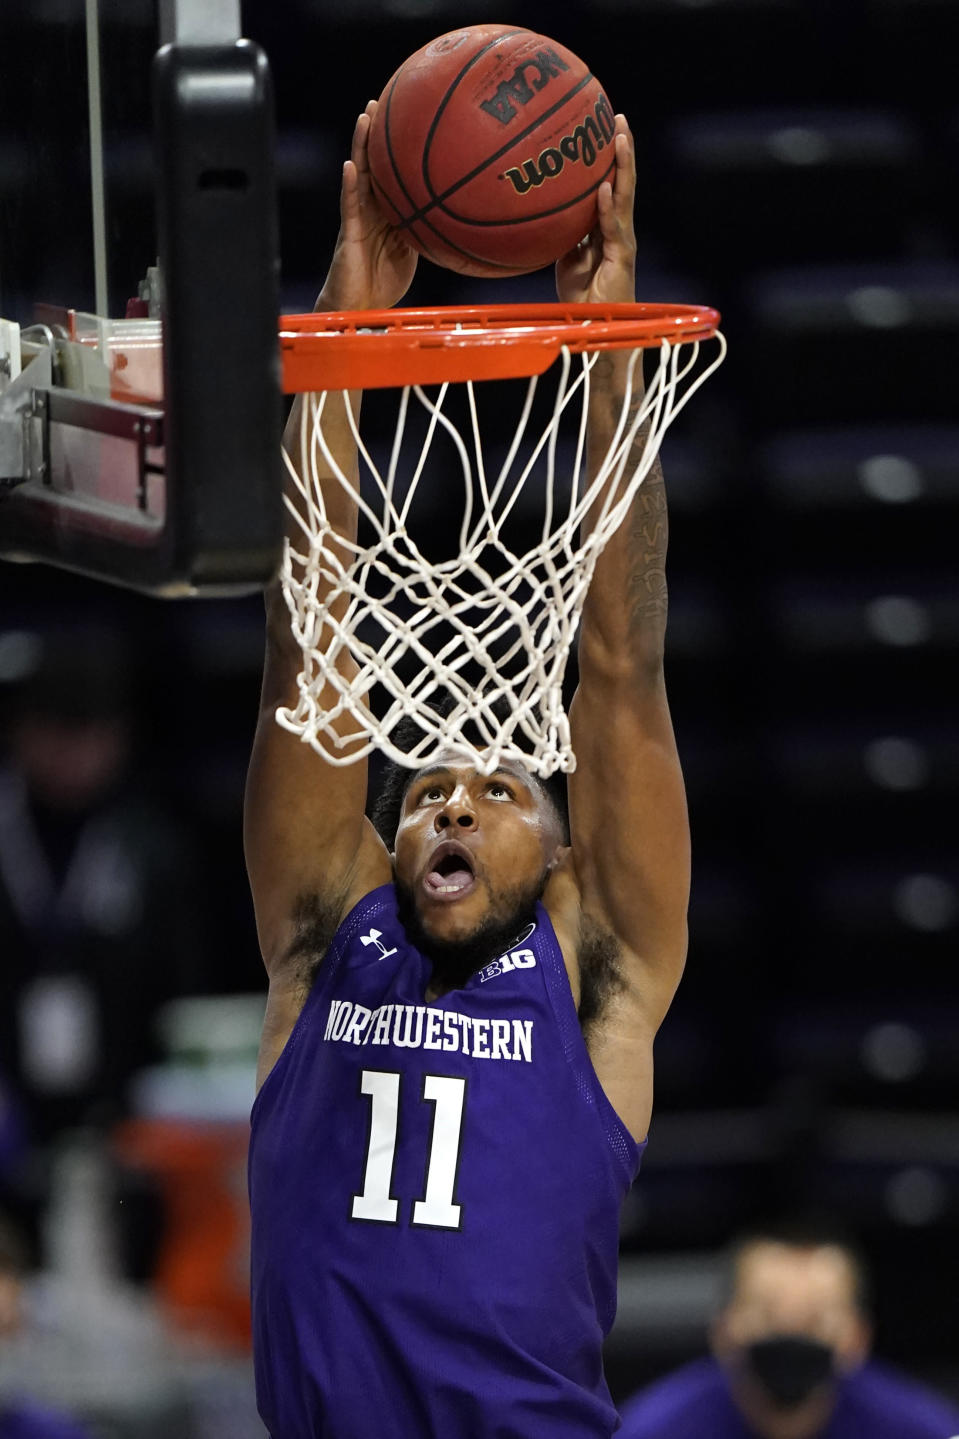 Northwestern guard Anthony Gaines dunks against Chicago State during the second half of an NCAA college basketball game in Evanston, Ill., Saturday, Dec. 5, 2020. (AP Photo/Nam Y. Huh)